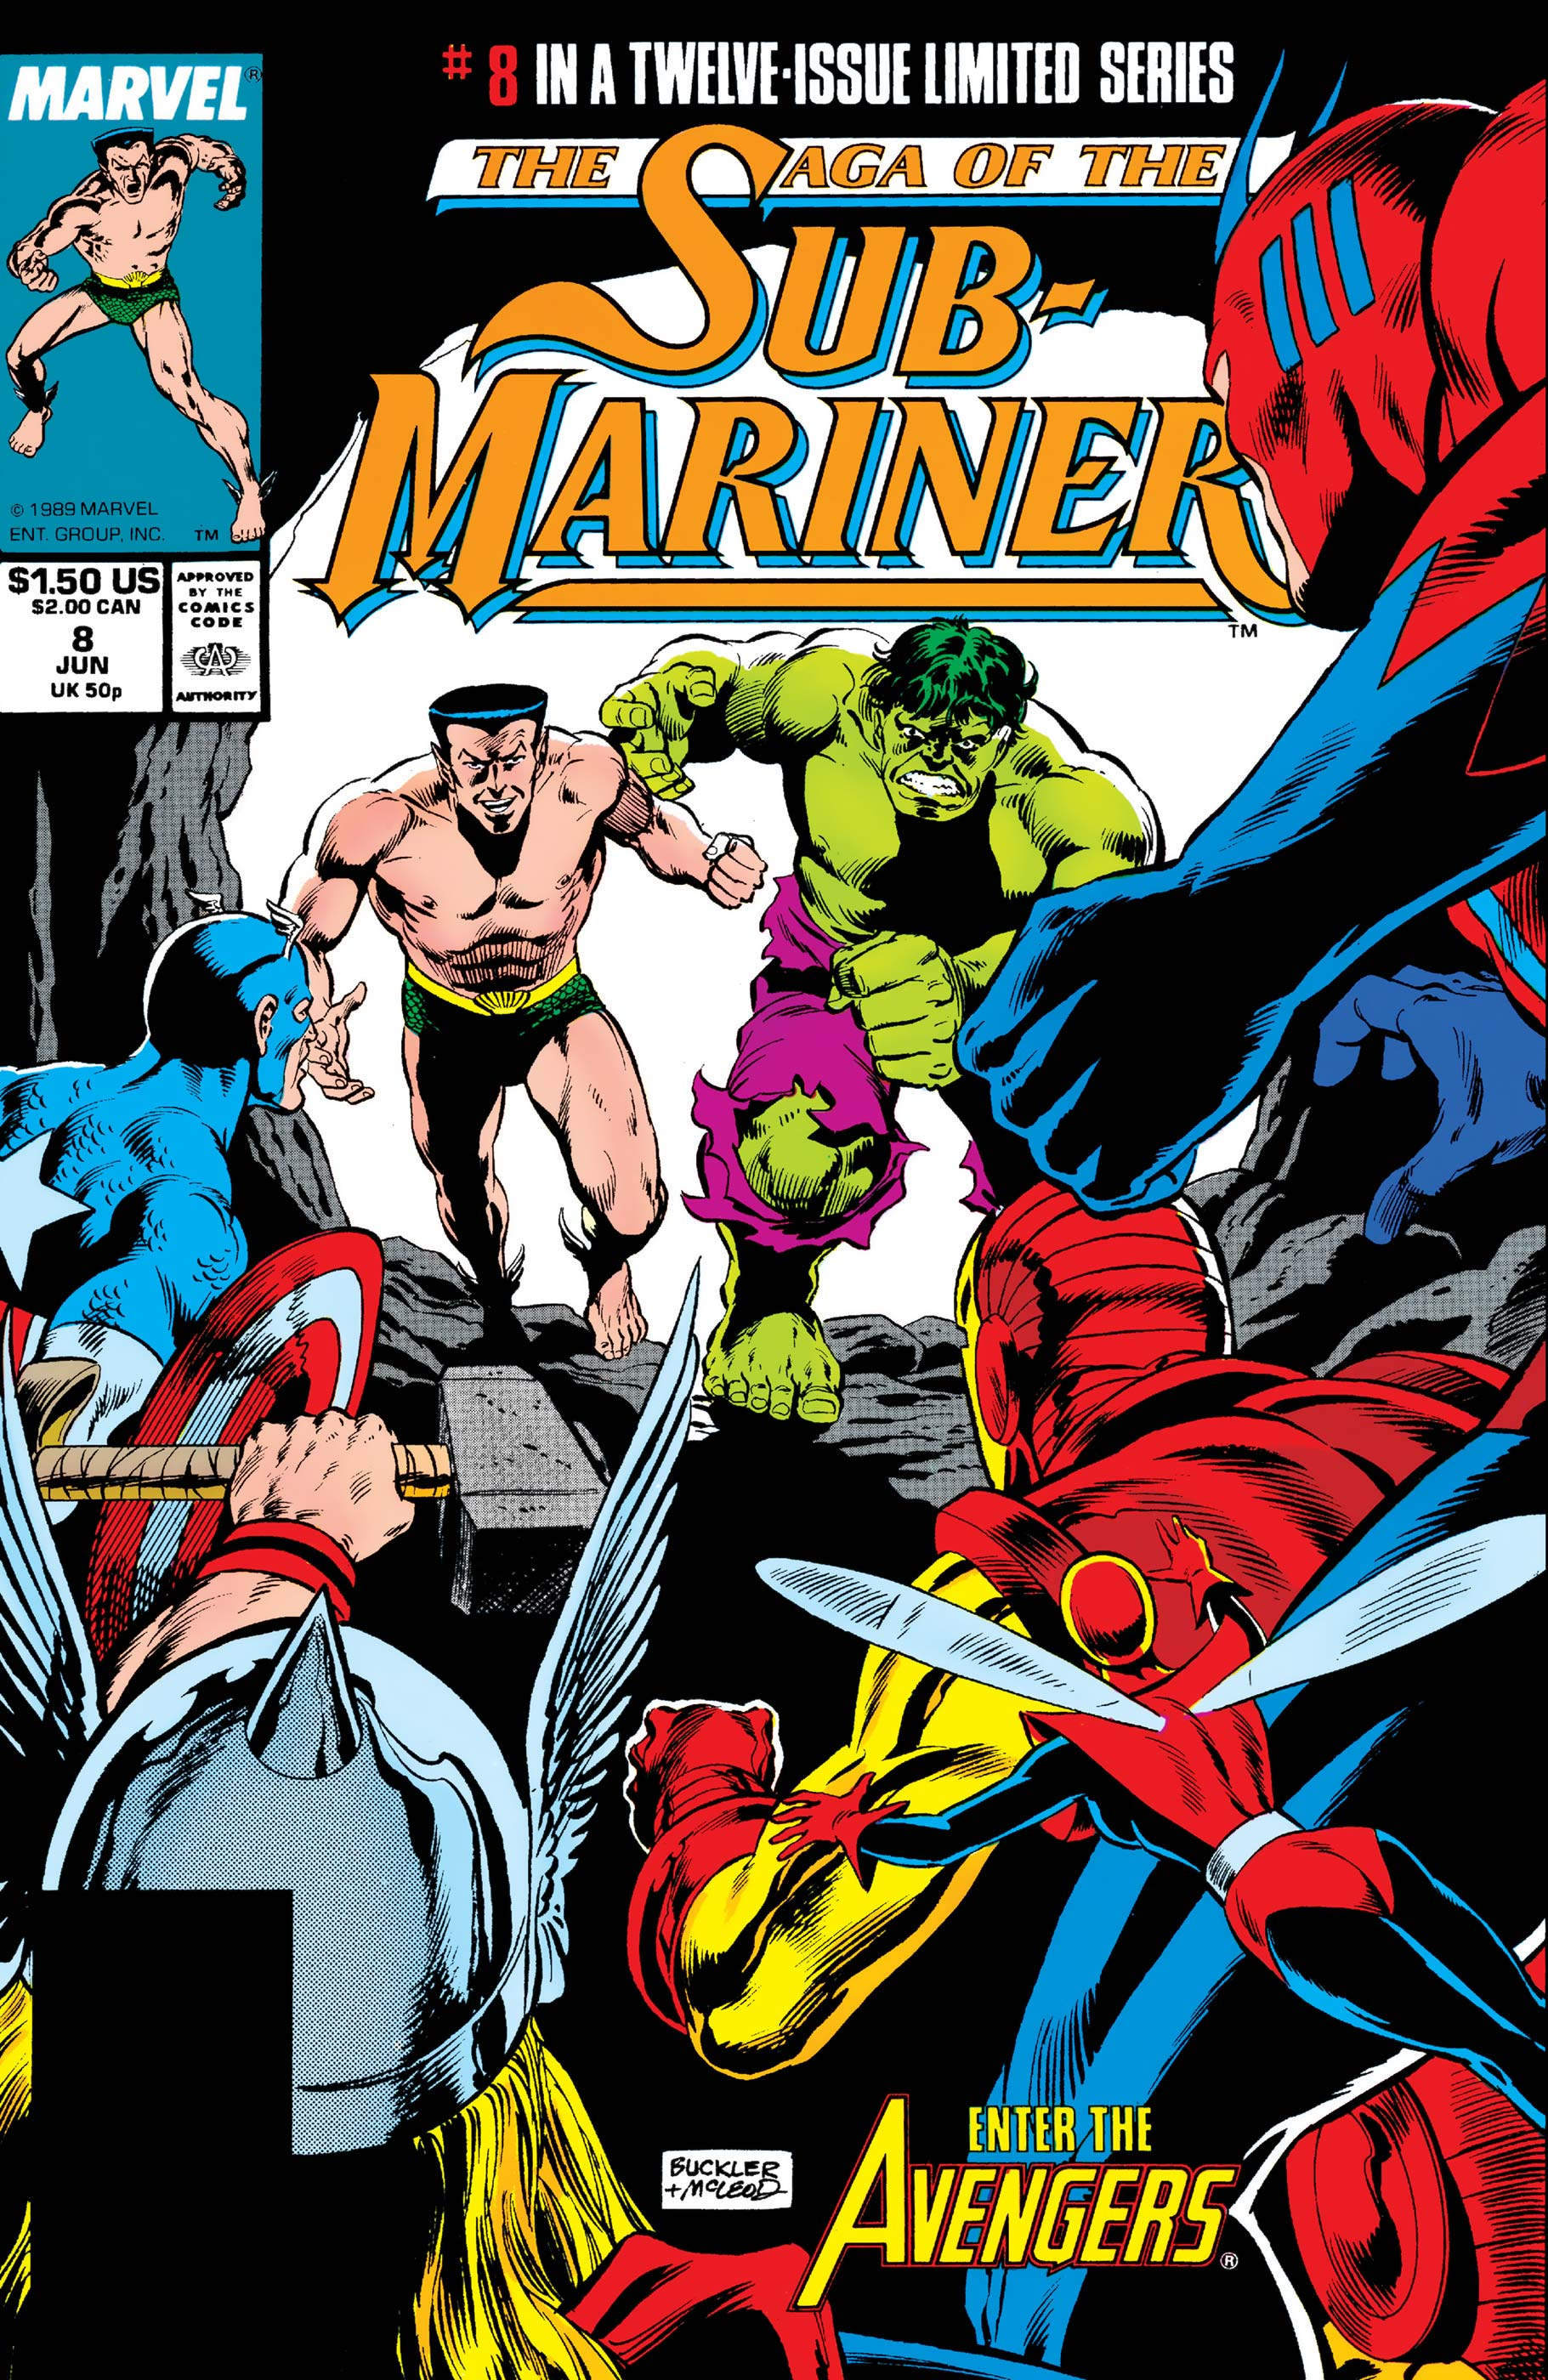 Saga of the Sub-Mariner (1988) #8